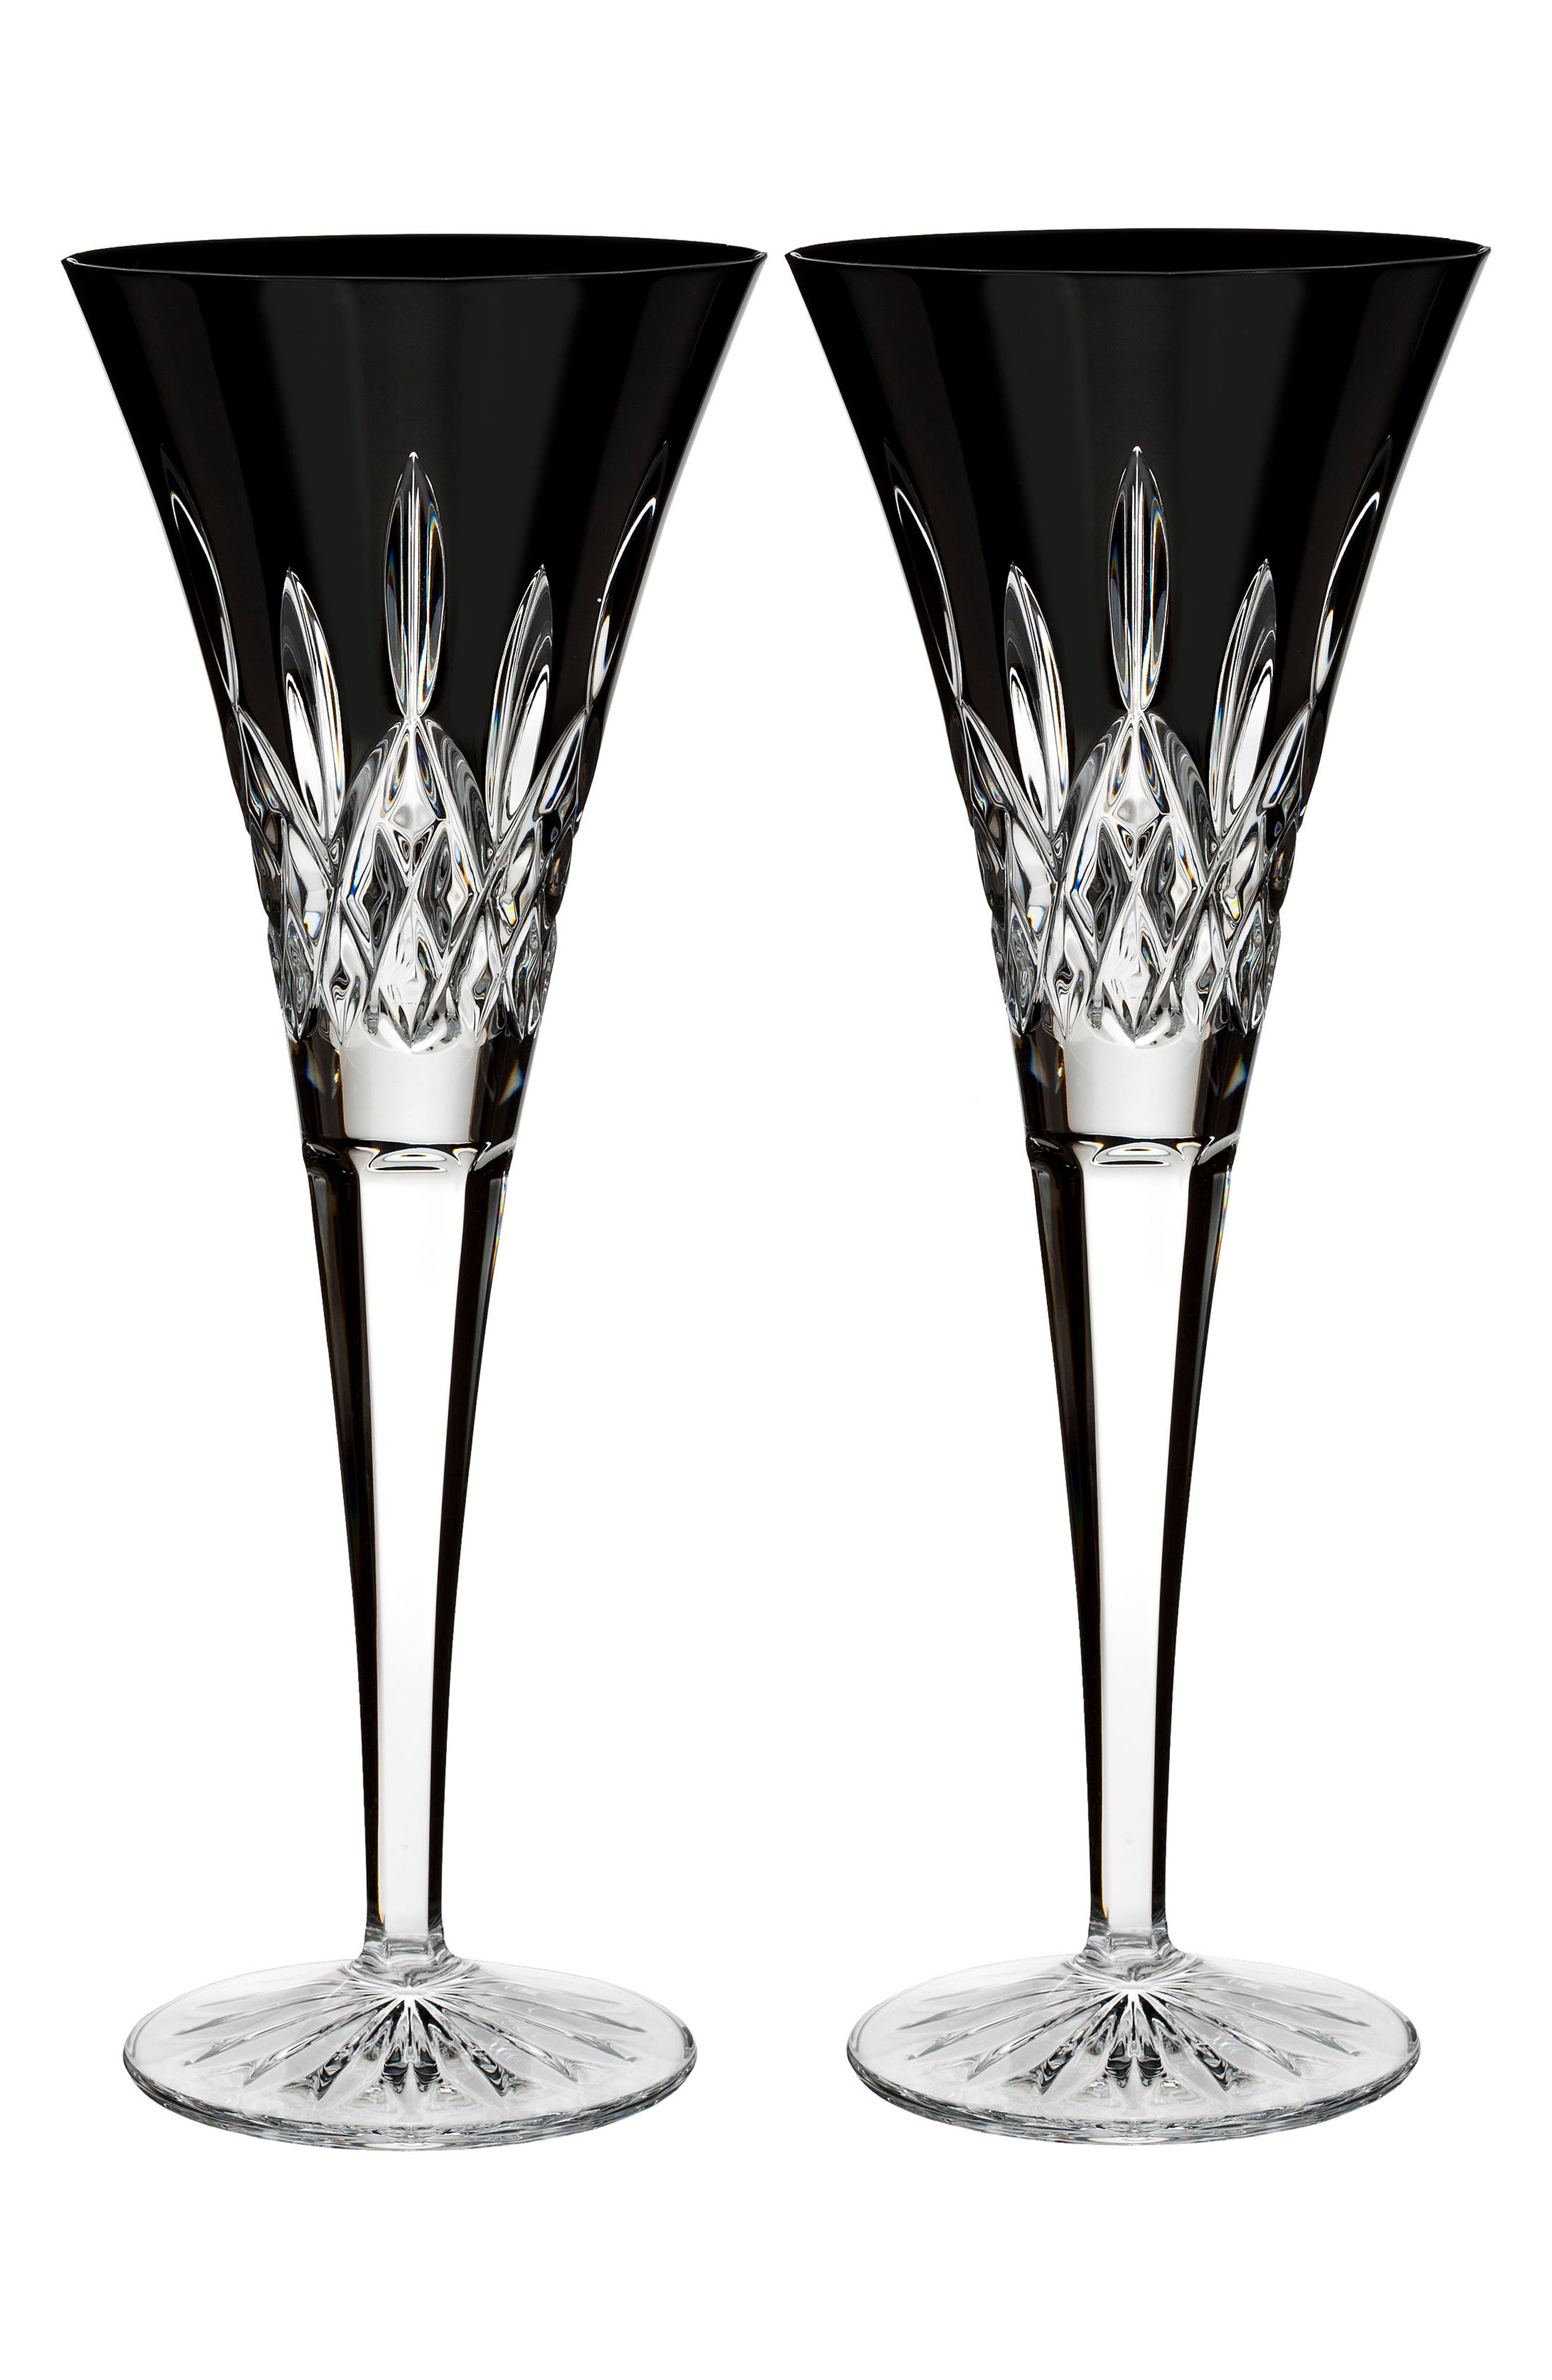 Waterford Lismore Diamond Set of 2 Black Lead Crystal Champagne Flutes